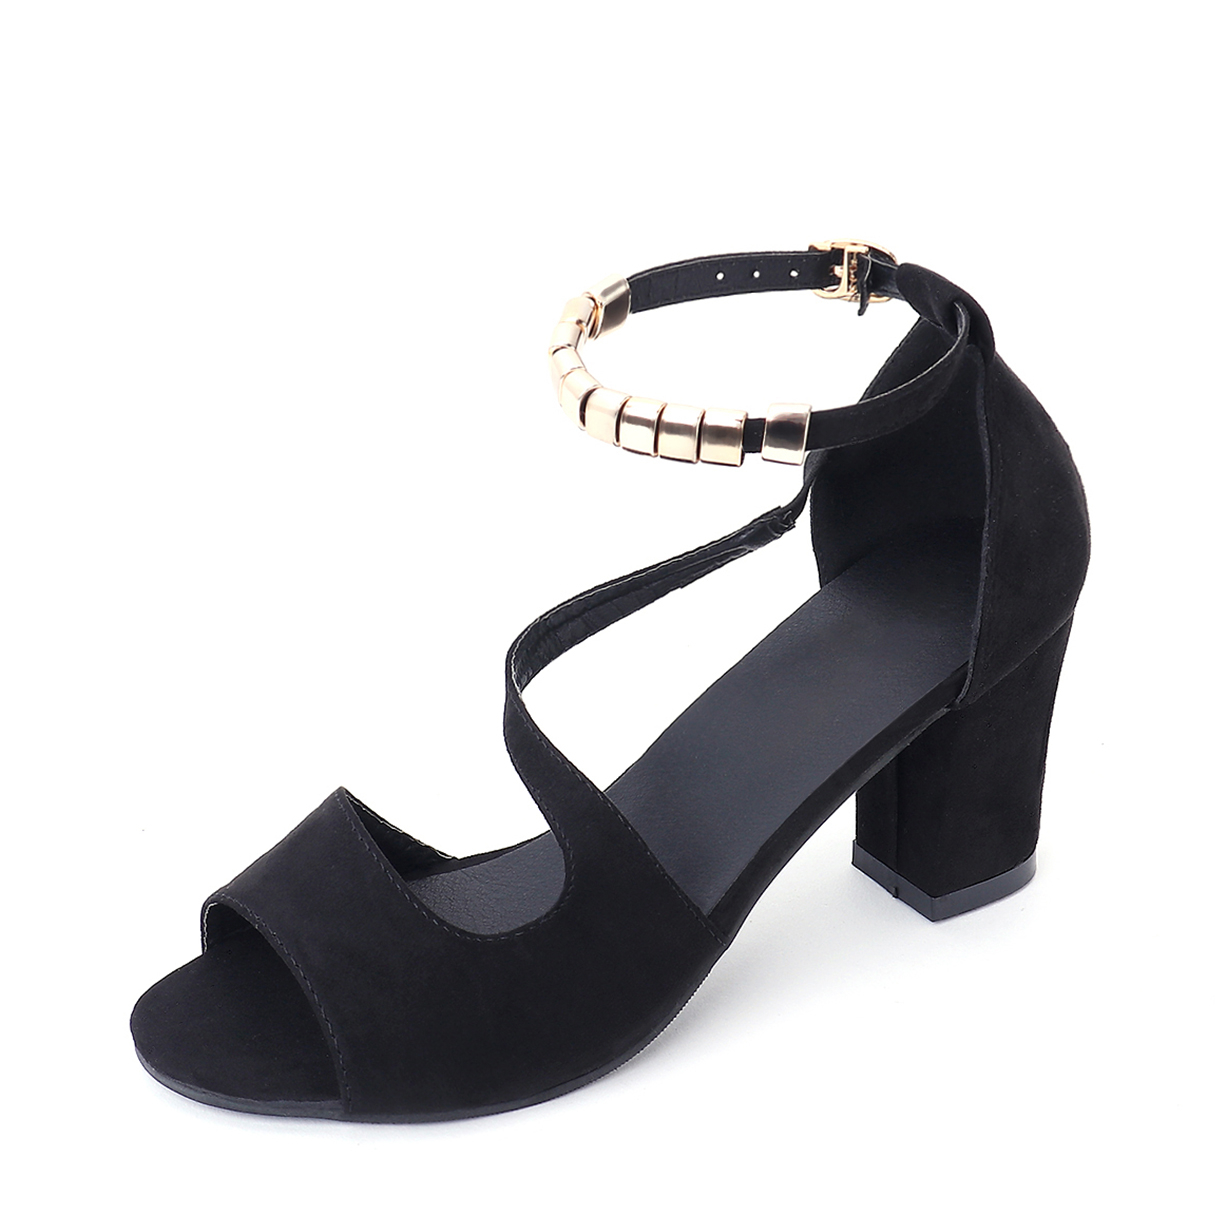 Black Chunky Heel Sandals with Ankle Strap flock leather women ankle strap high heel sandals platform sexy fashion party shoes for woman black with 10cm heels ch a0060